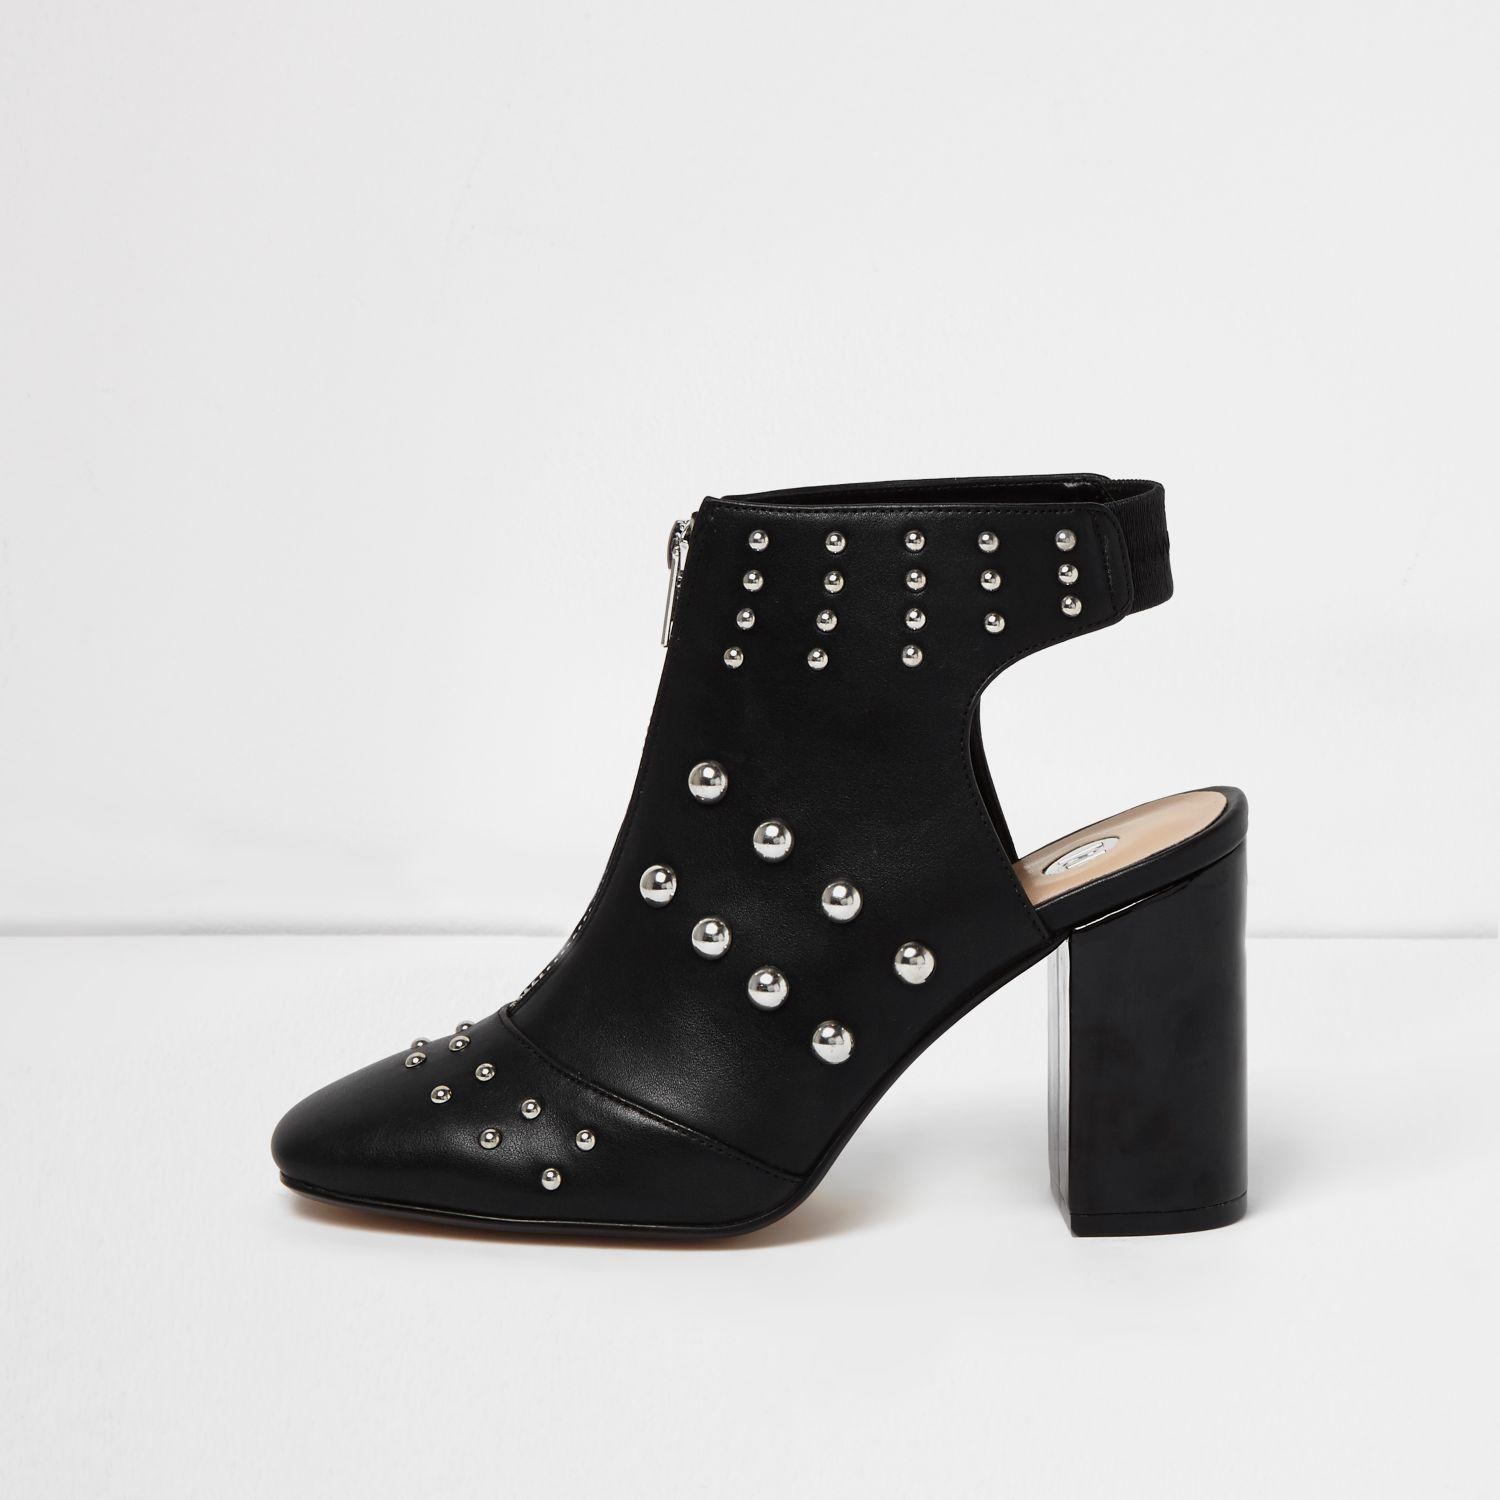 5c7a30f1902 Lyst - River Island Black Studded Shoe Boots in Black